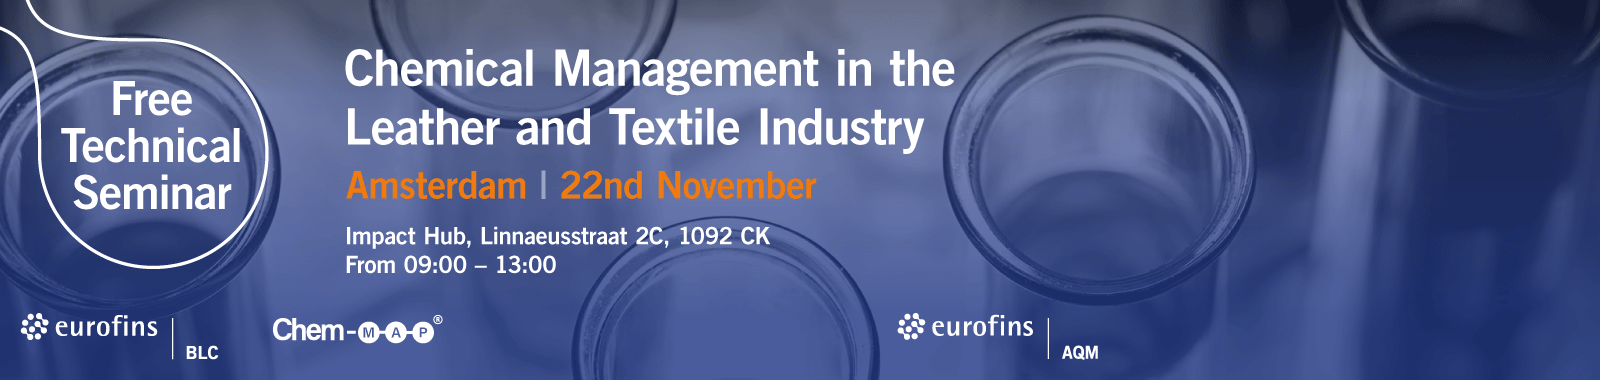 Free Technical Seminar - Chemical Management in the Leather and Textile Industry